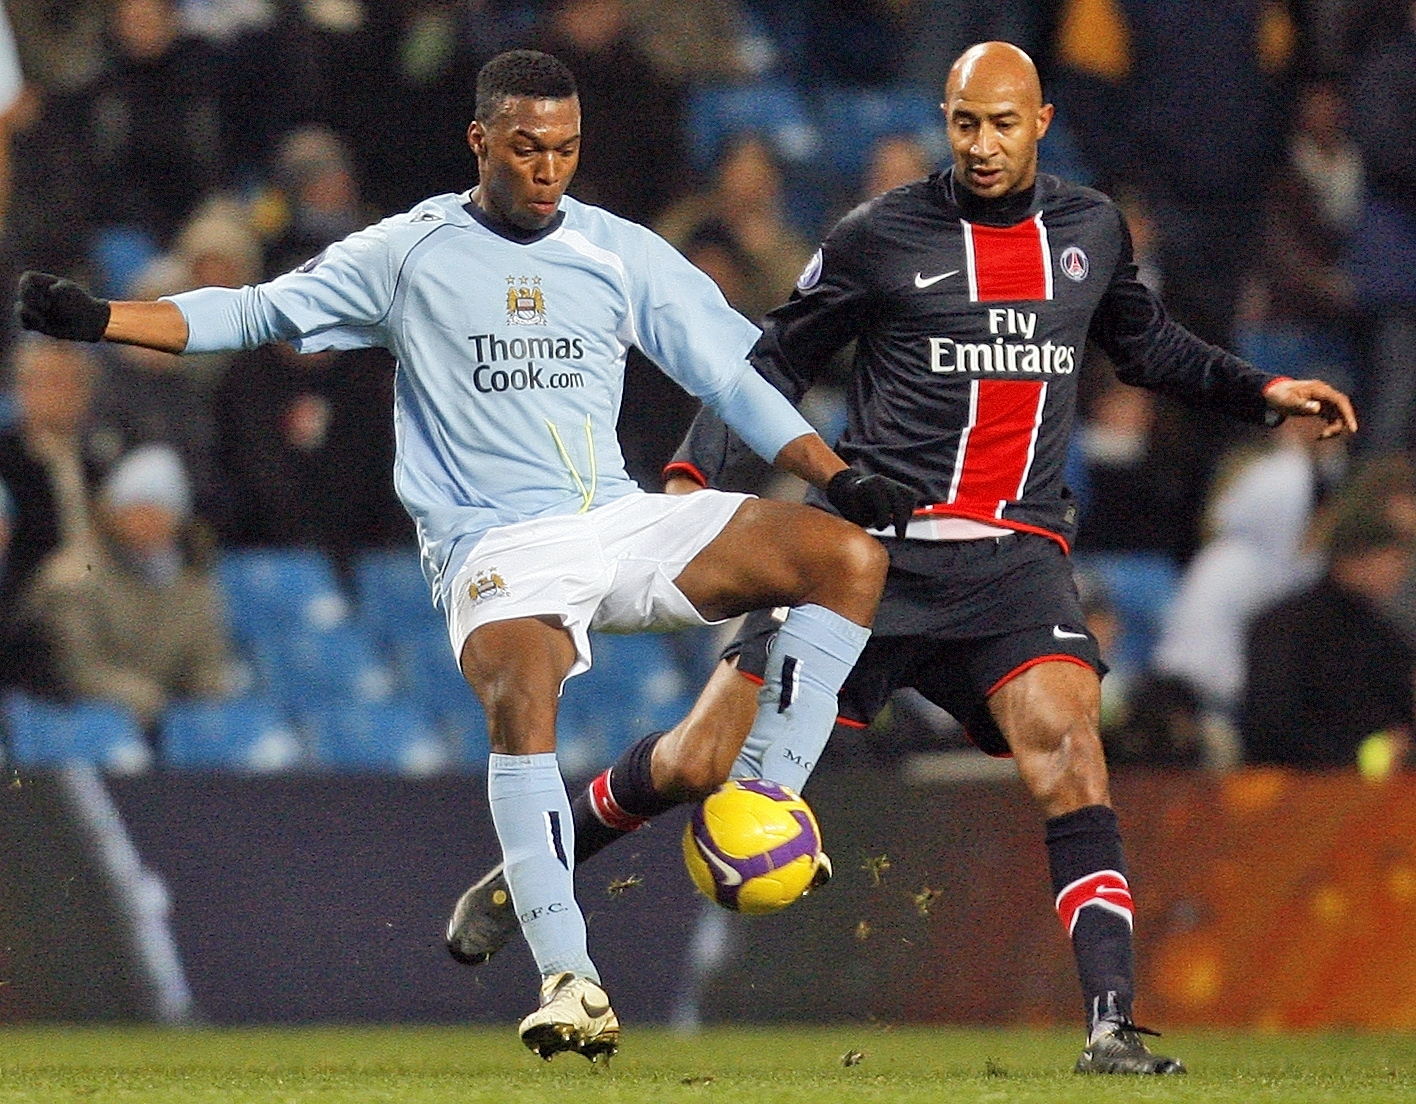 Manchester City Vs PSG Was A Very Different Match In 2008